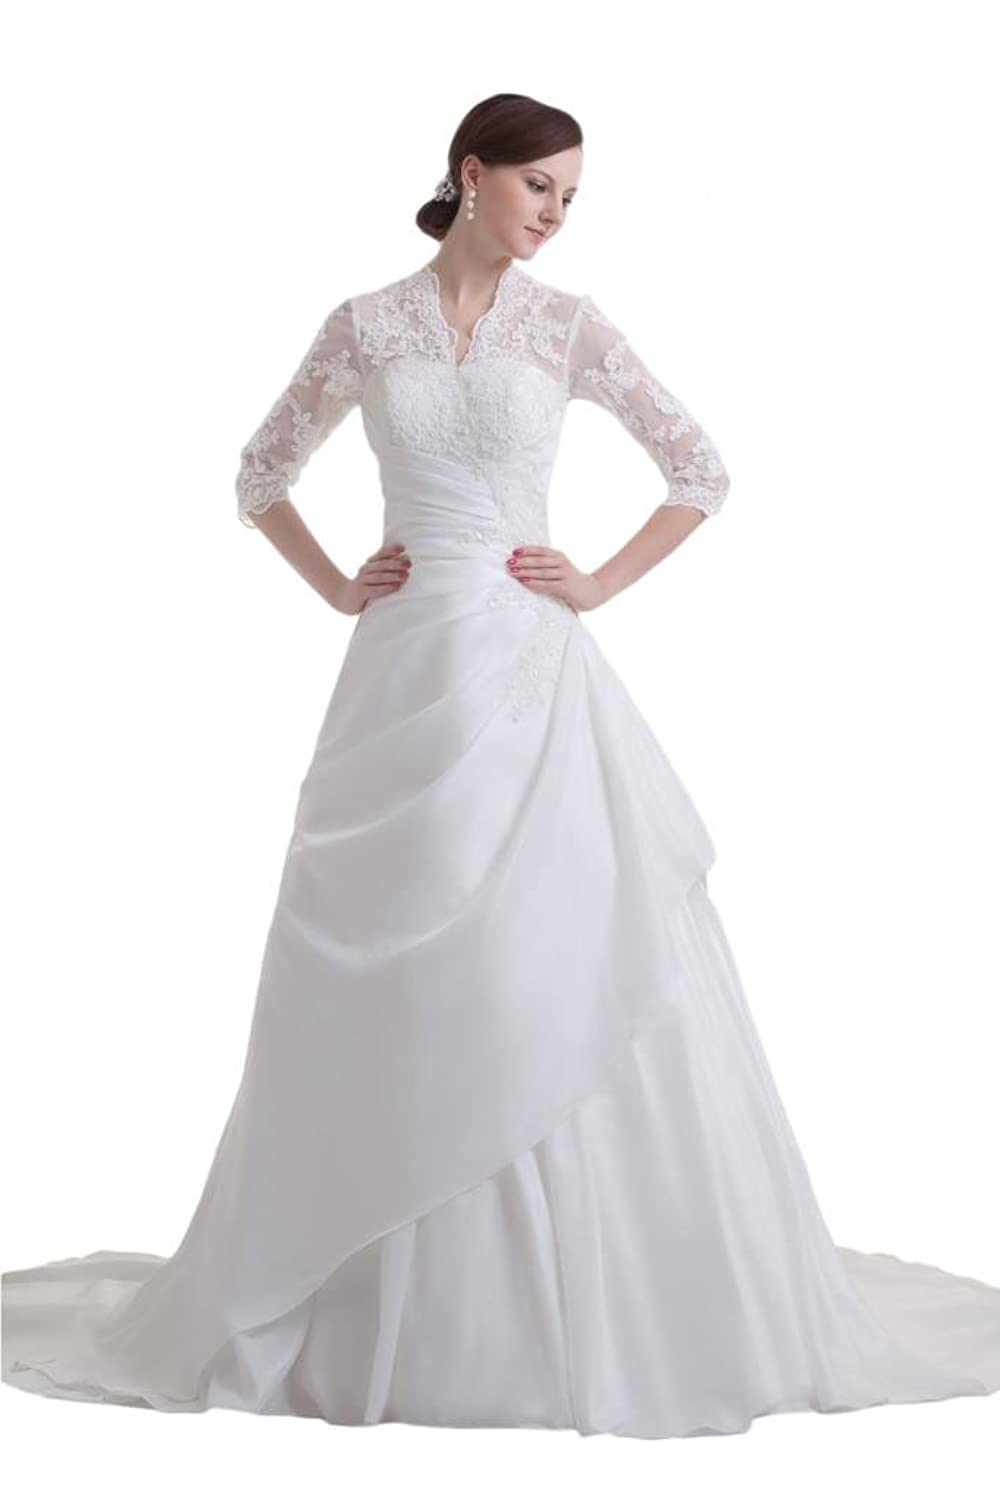 Sunvary Modest Lace Long Sleeves Ball Gown Bride Dress Wedding White At Amazon Womens Clothing Store Evening Dresses